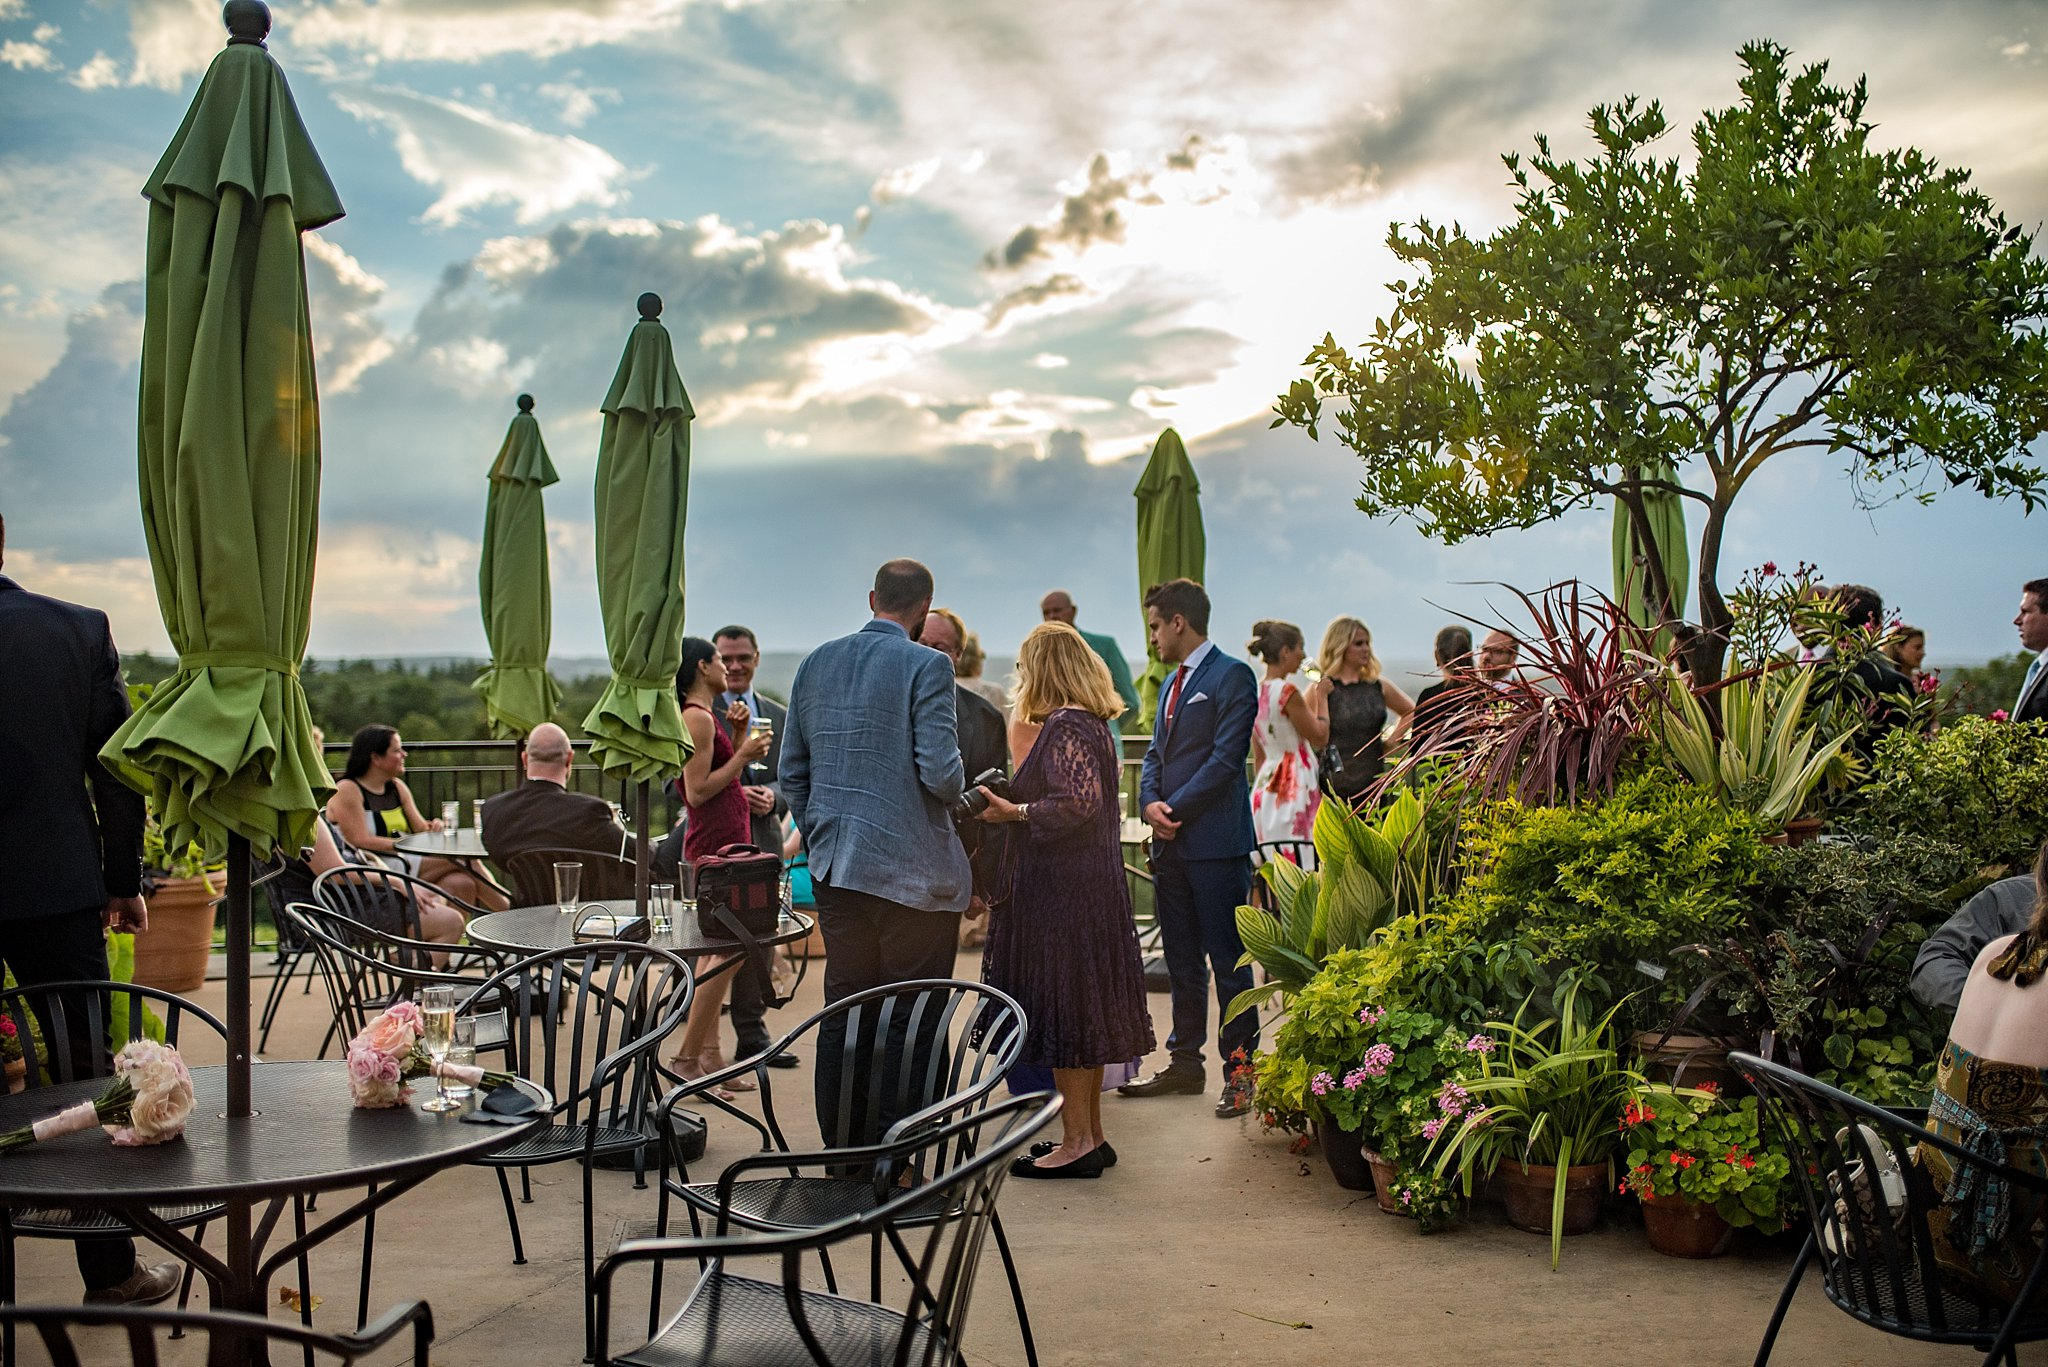 outdoor cocktail hour during sunset at tower hill botanic garden